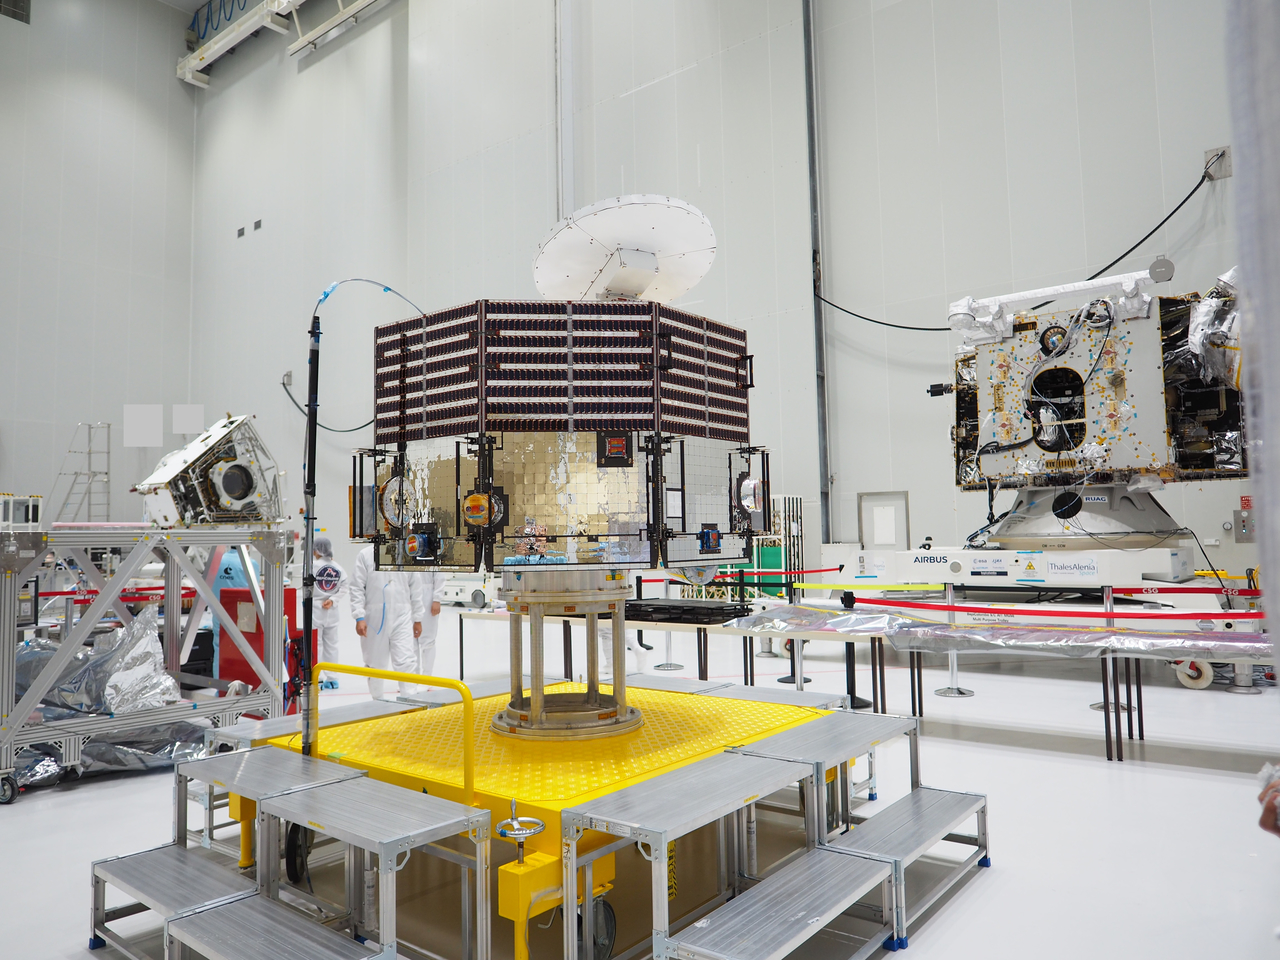 1567214577317-BepiColombo_unpacked_at_the_Spaceport_20180508_1280.jpg